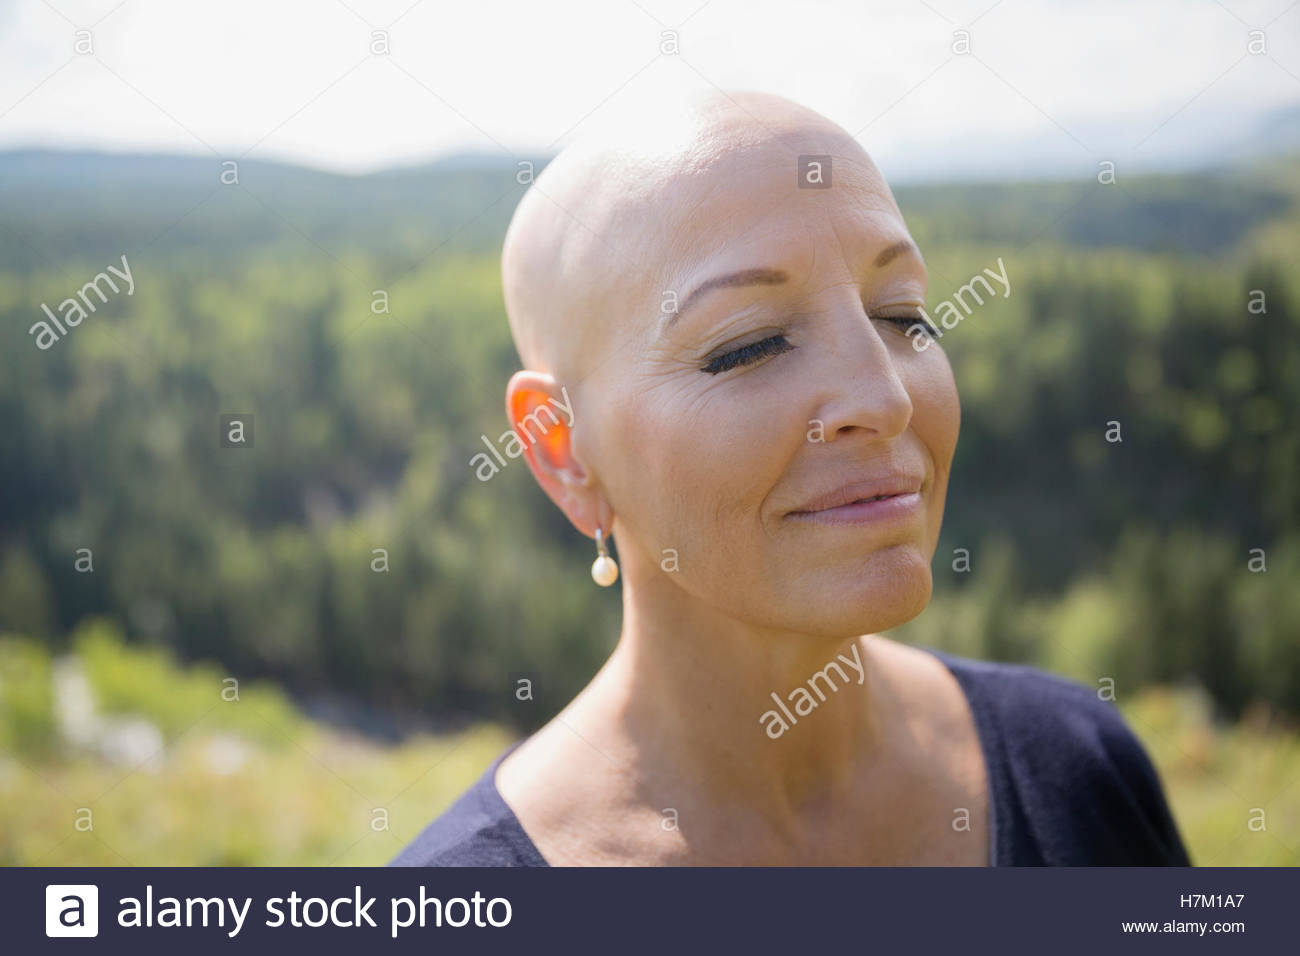 Close up serene female cancer survivor with shaved head and eyes closed - Stock Image